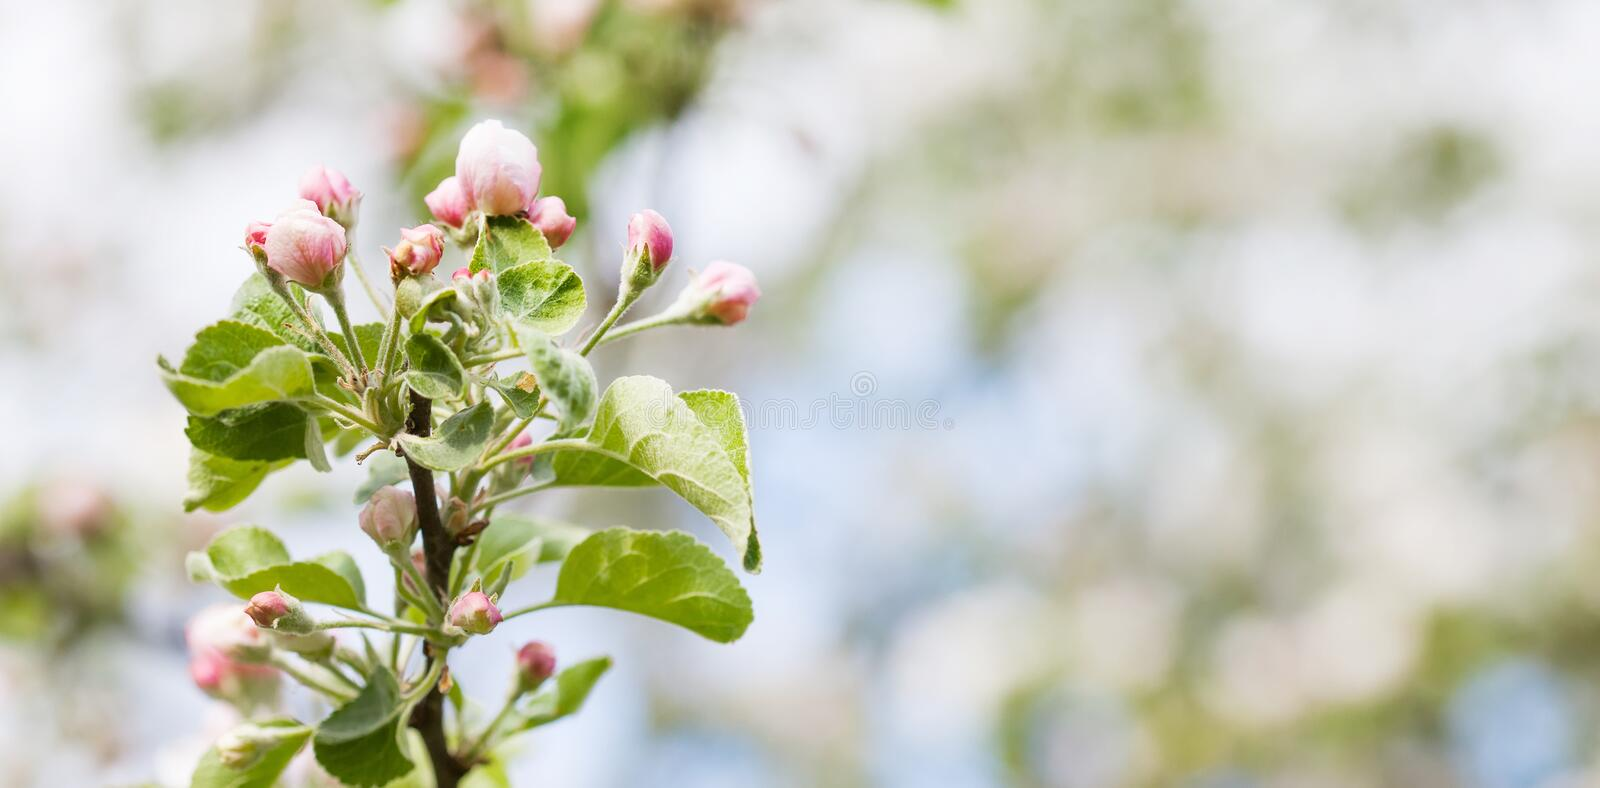 Pink apple flowers macro view. Blooming fruit tree. Spring nature landscape. Soft background.  royalty free stock photo